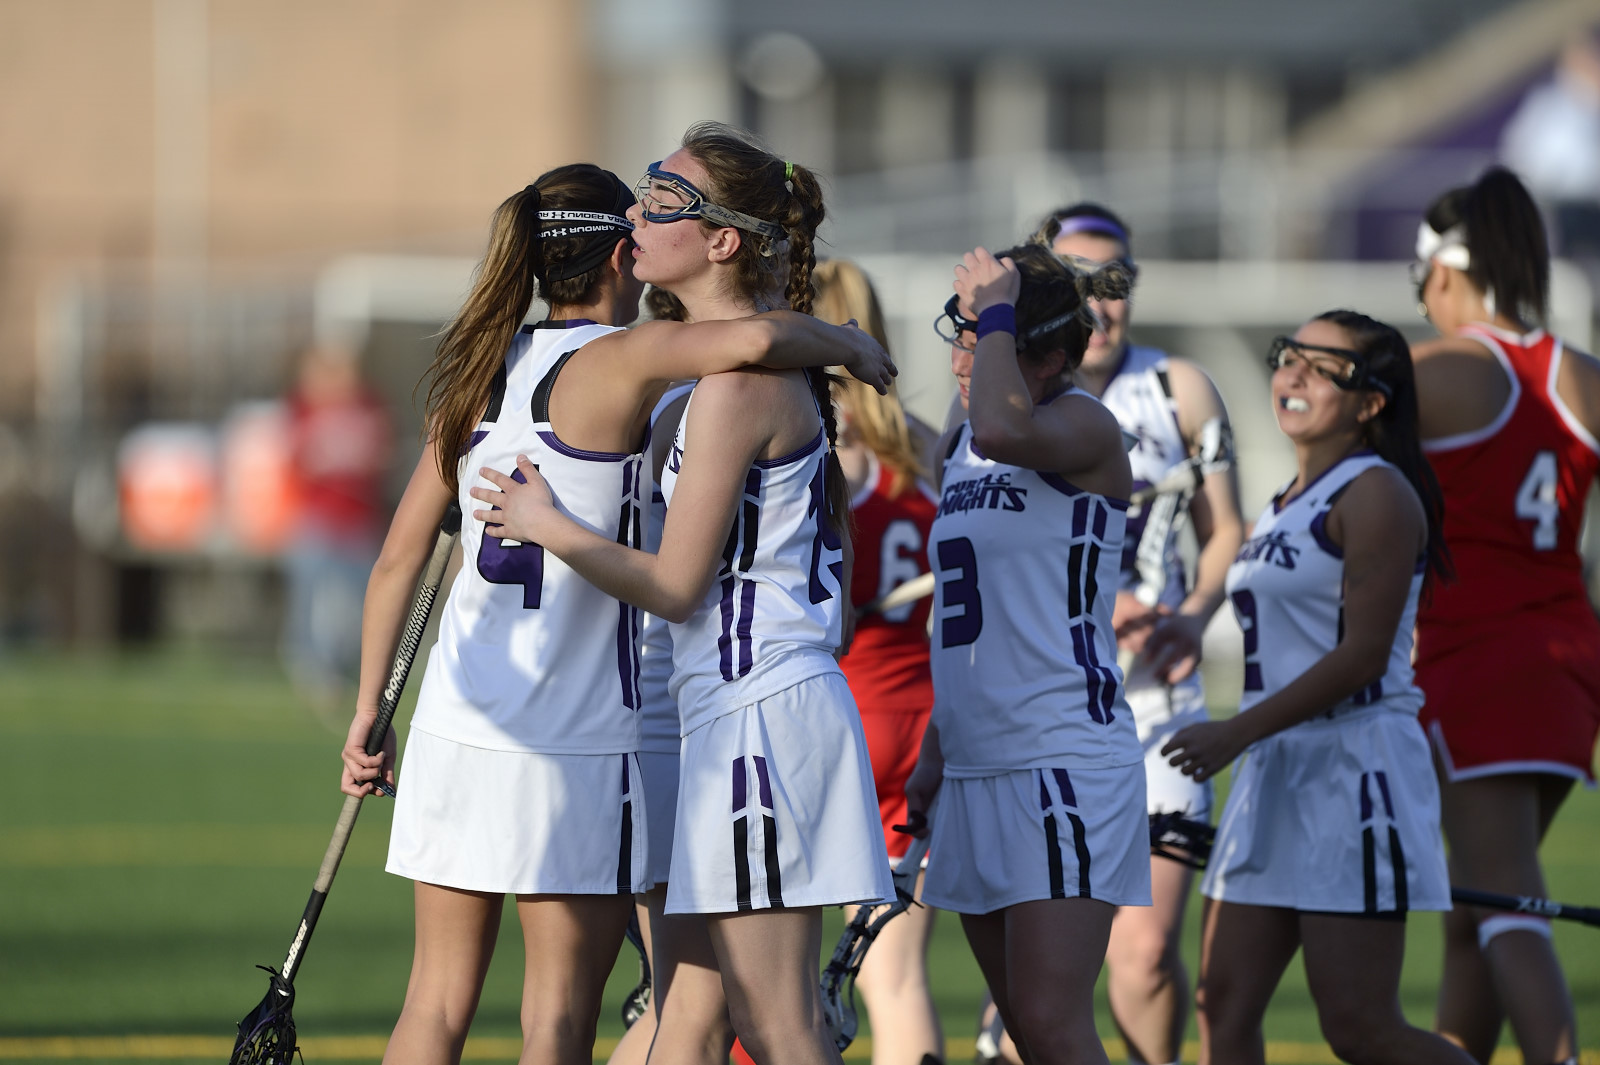 Women's Lacrosse Moves To 4-1 On the Season With 11-6 Victory At Chestnut Hill